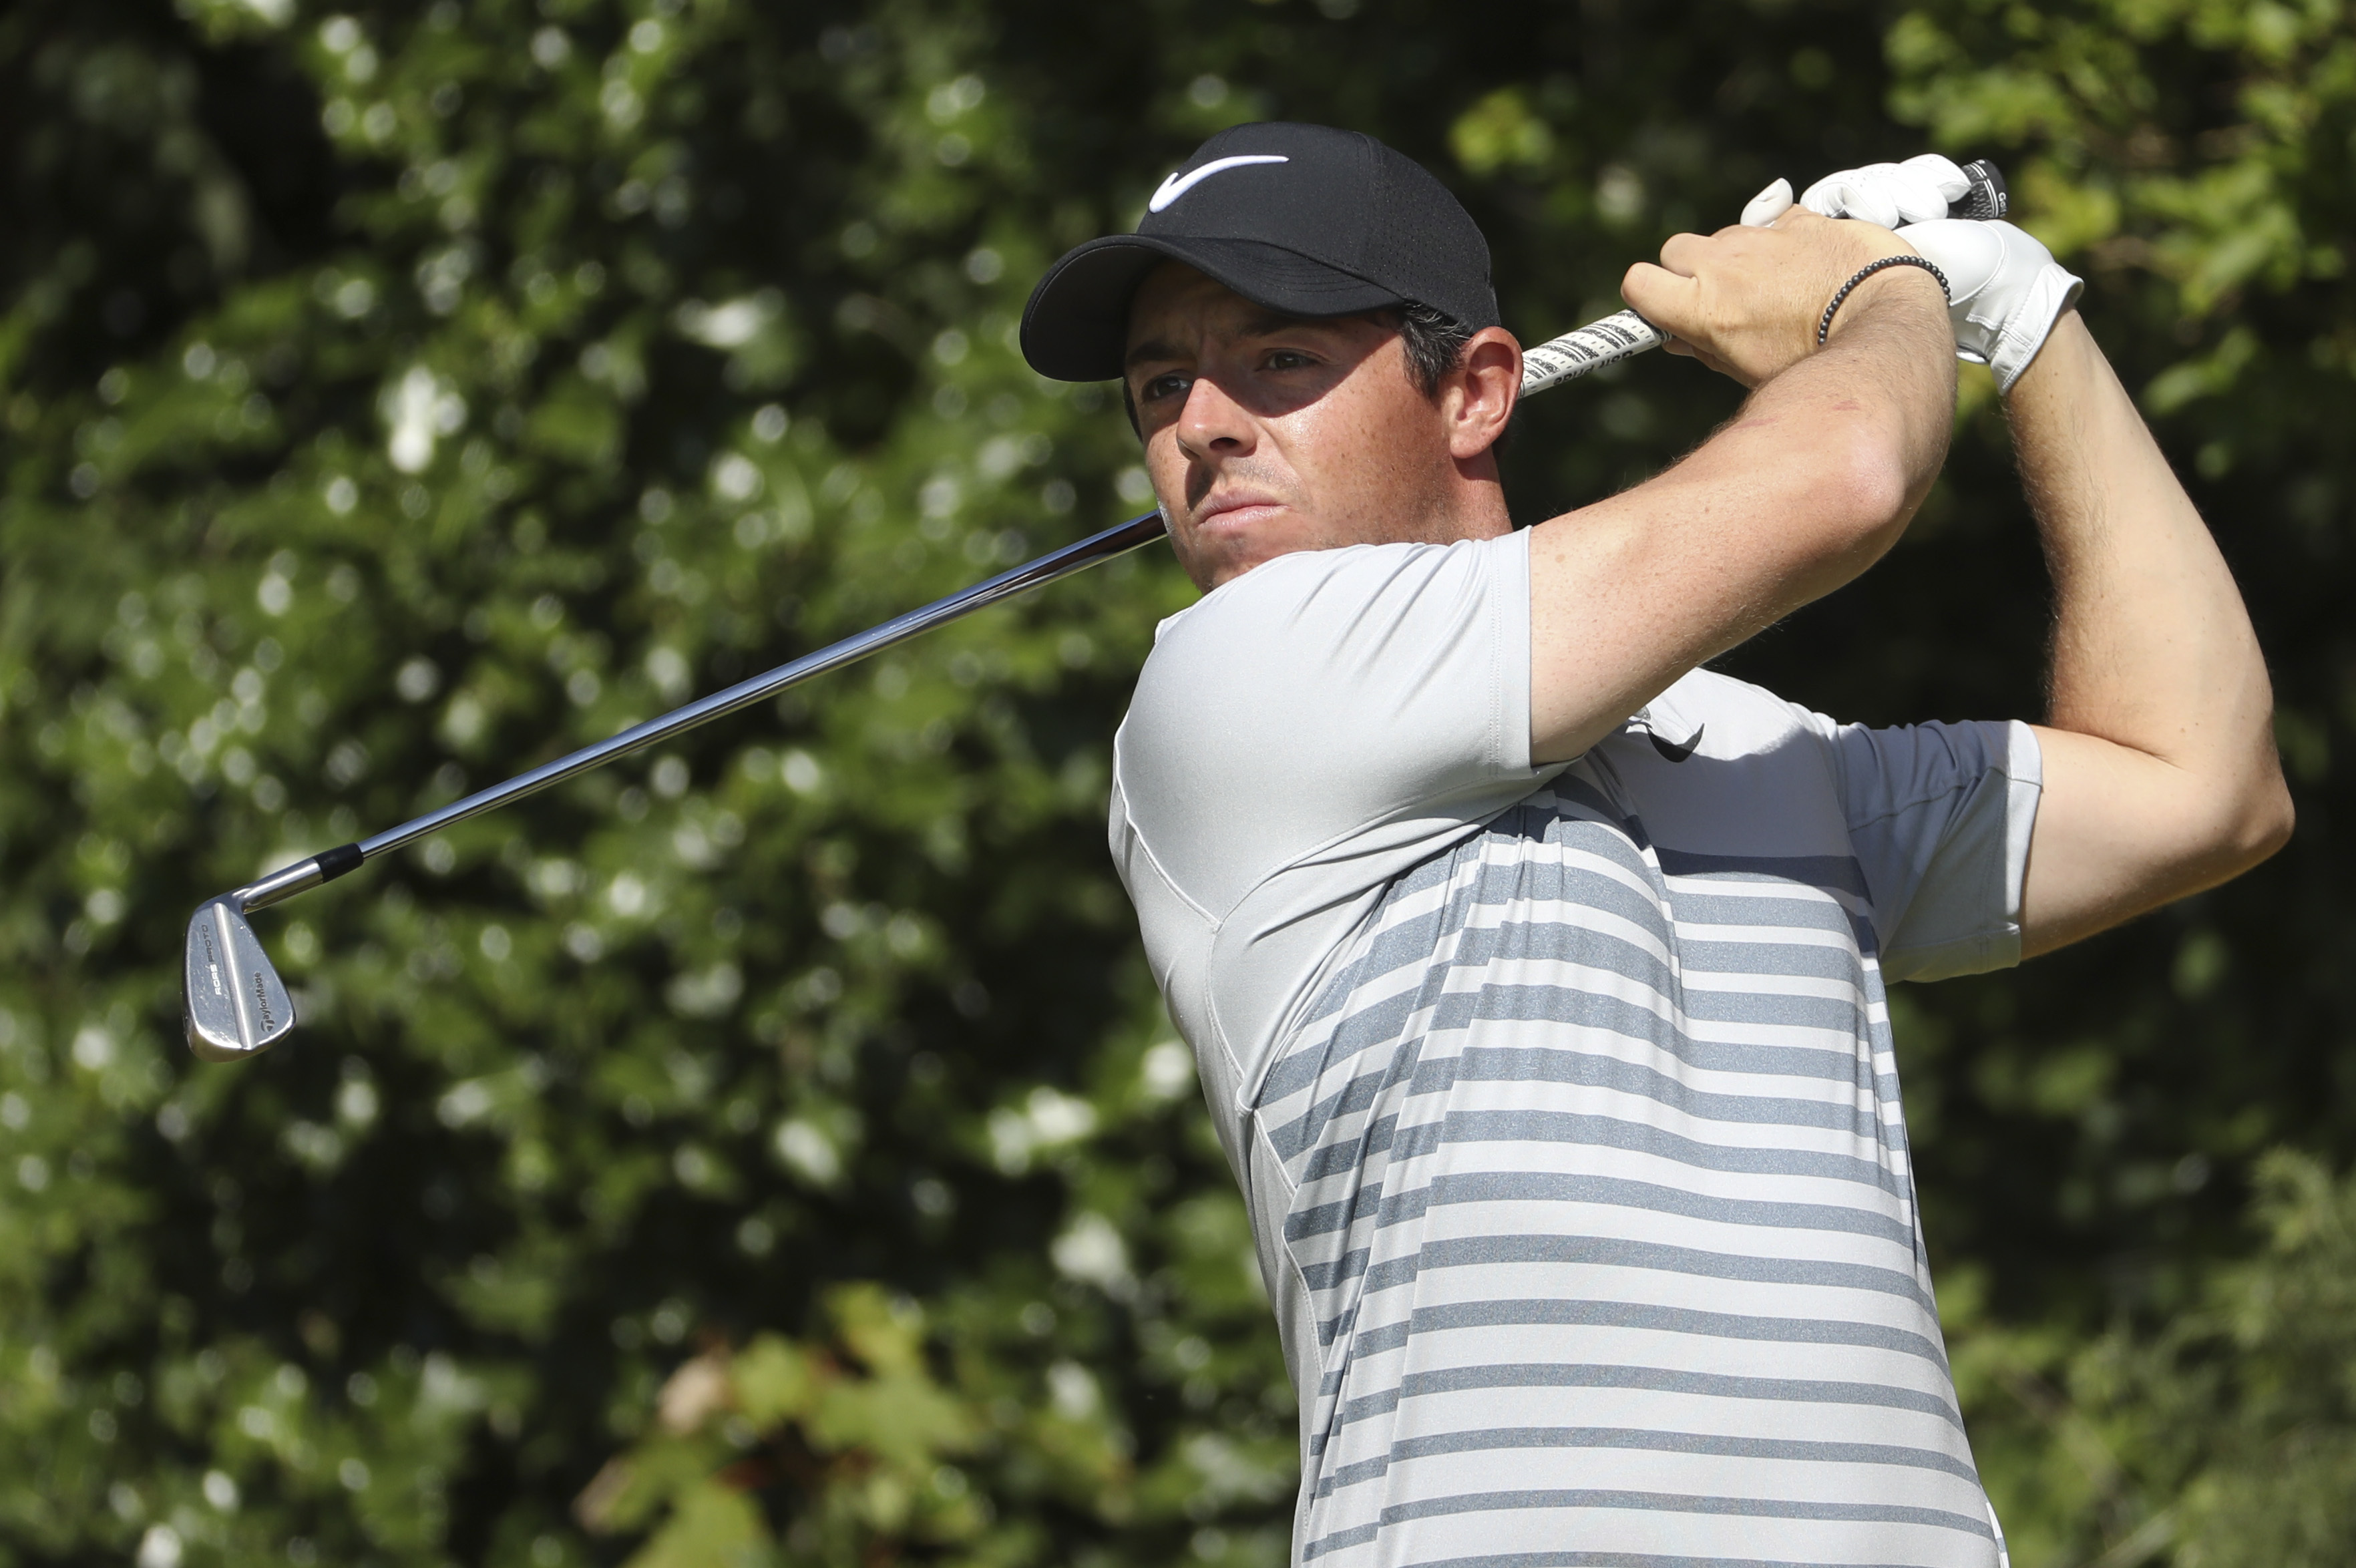 Northern Ireland's Rory McIlroy plays a shot from the 5th tee during a practice round ahead of the British Open Golf Championship, at Royal Birkdale, Southport, England Tuesday, July 18, 2017. (AP Photo/Peter Morrison)